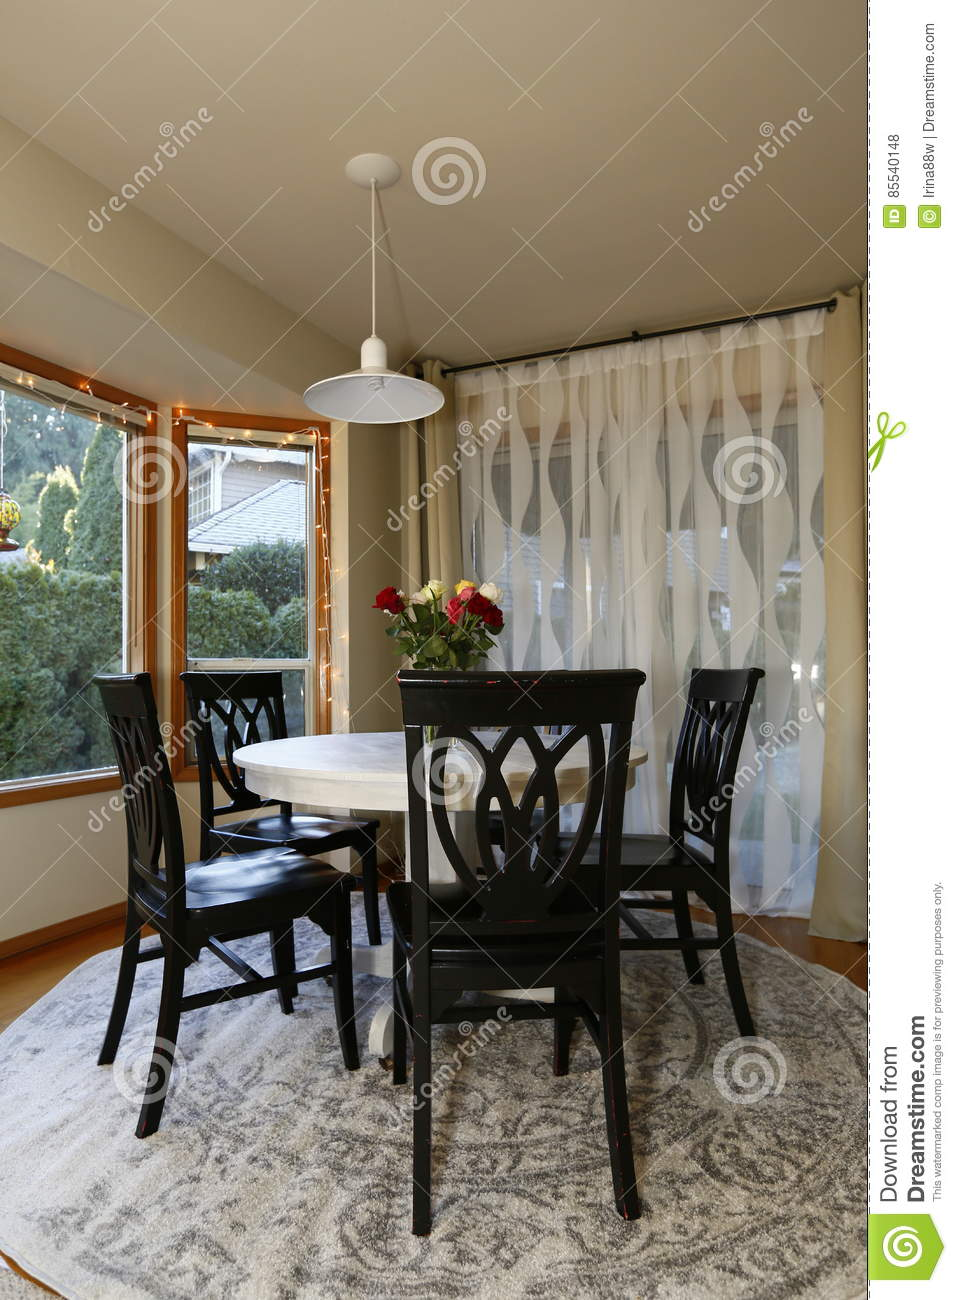 Picture of: Dining Room With Round Dining Table And Black Chairs Stock Photo Image Of Home Estate 85540148